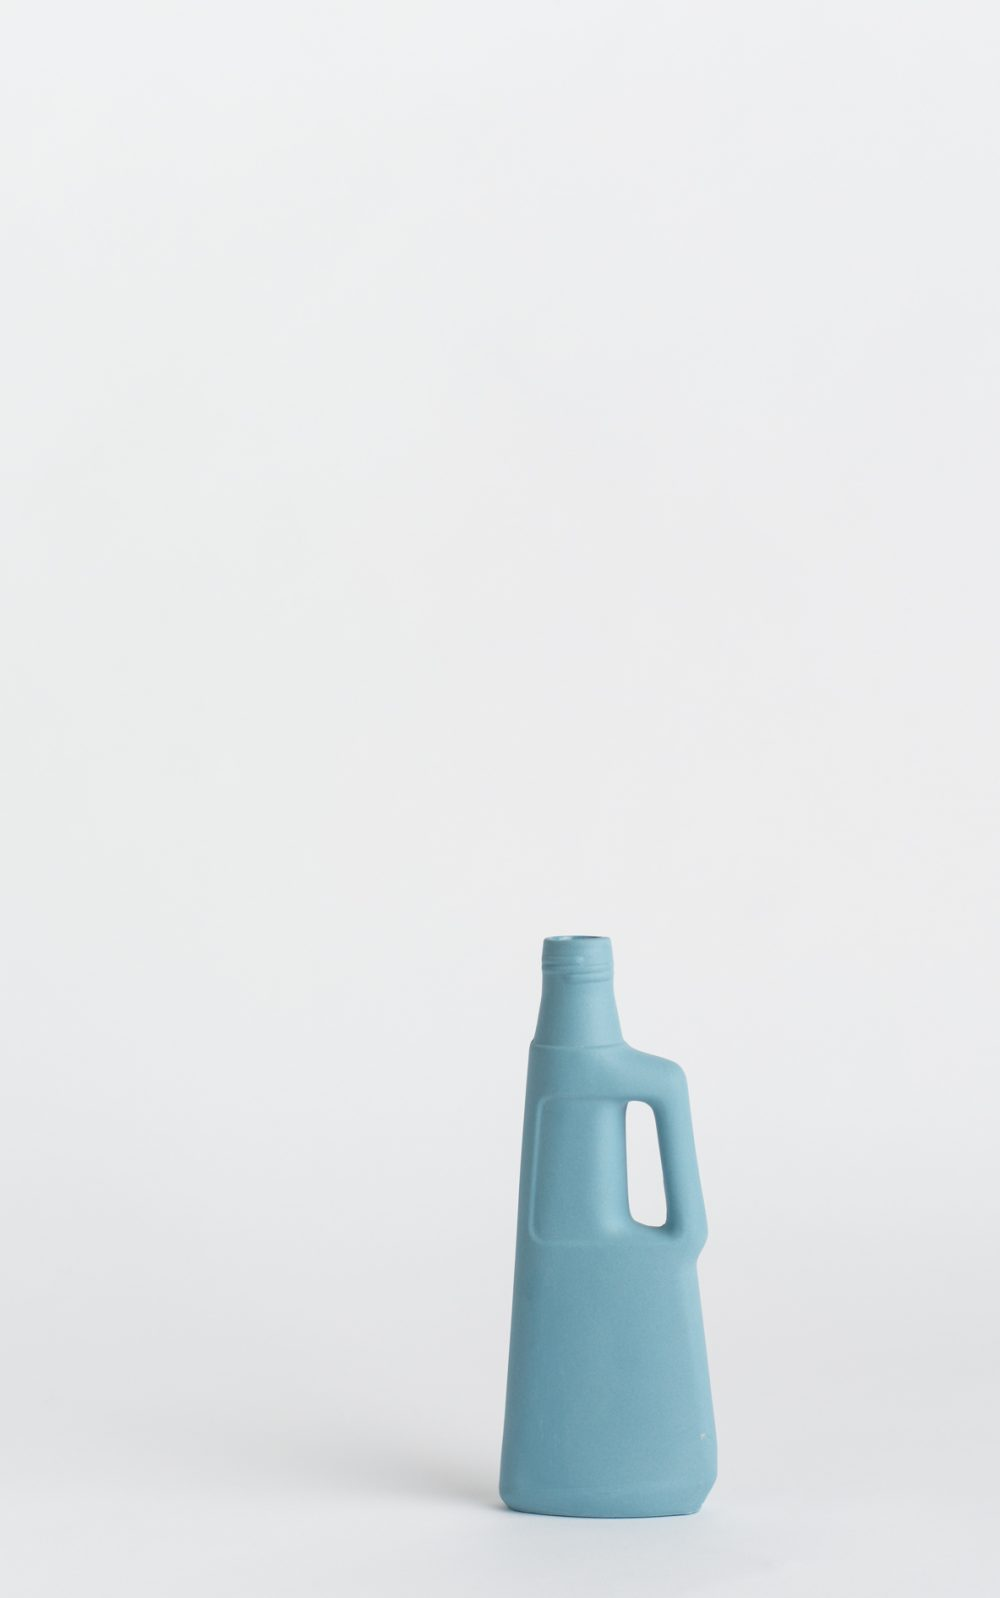 bottle vase #9 light blue